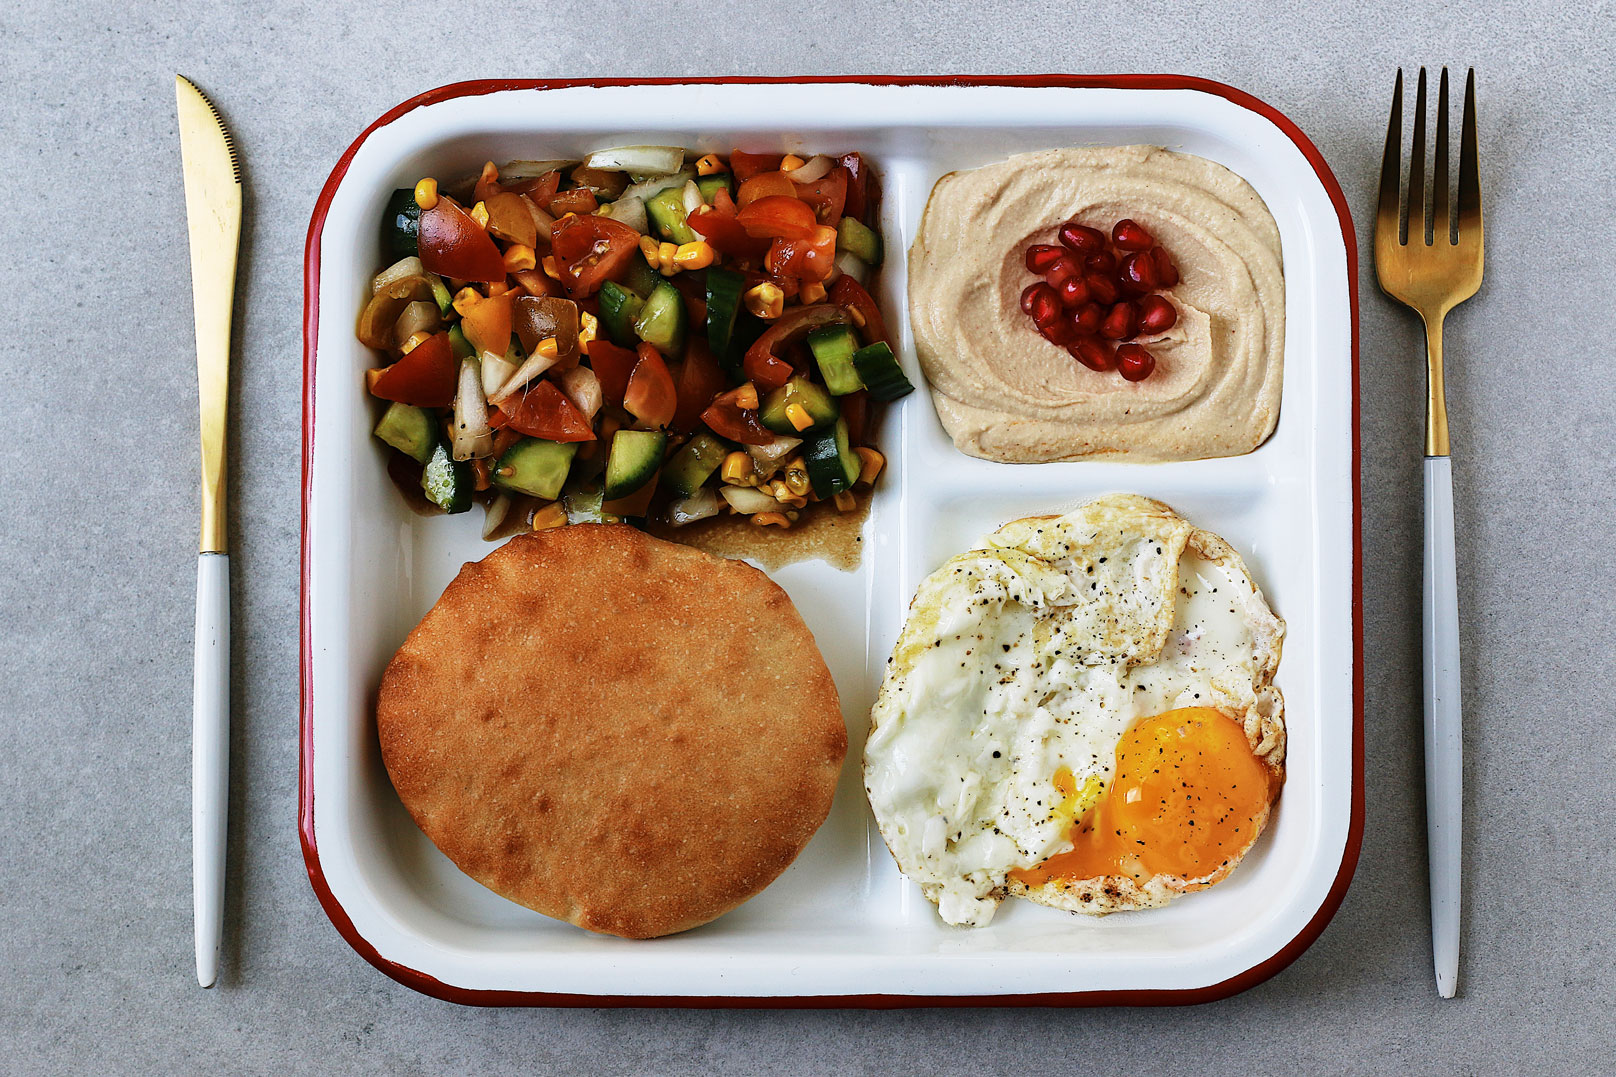 Her-Cookbook-Club-Molly-On-the-Range-my-everyday-breakfast-for-the-summer